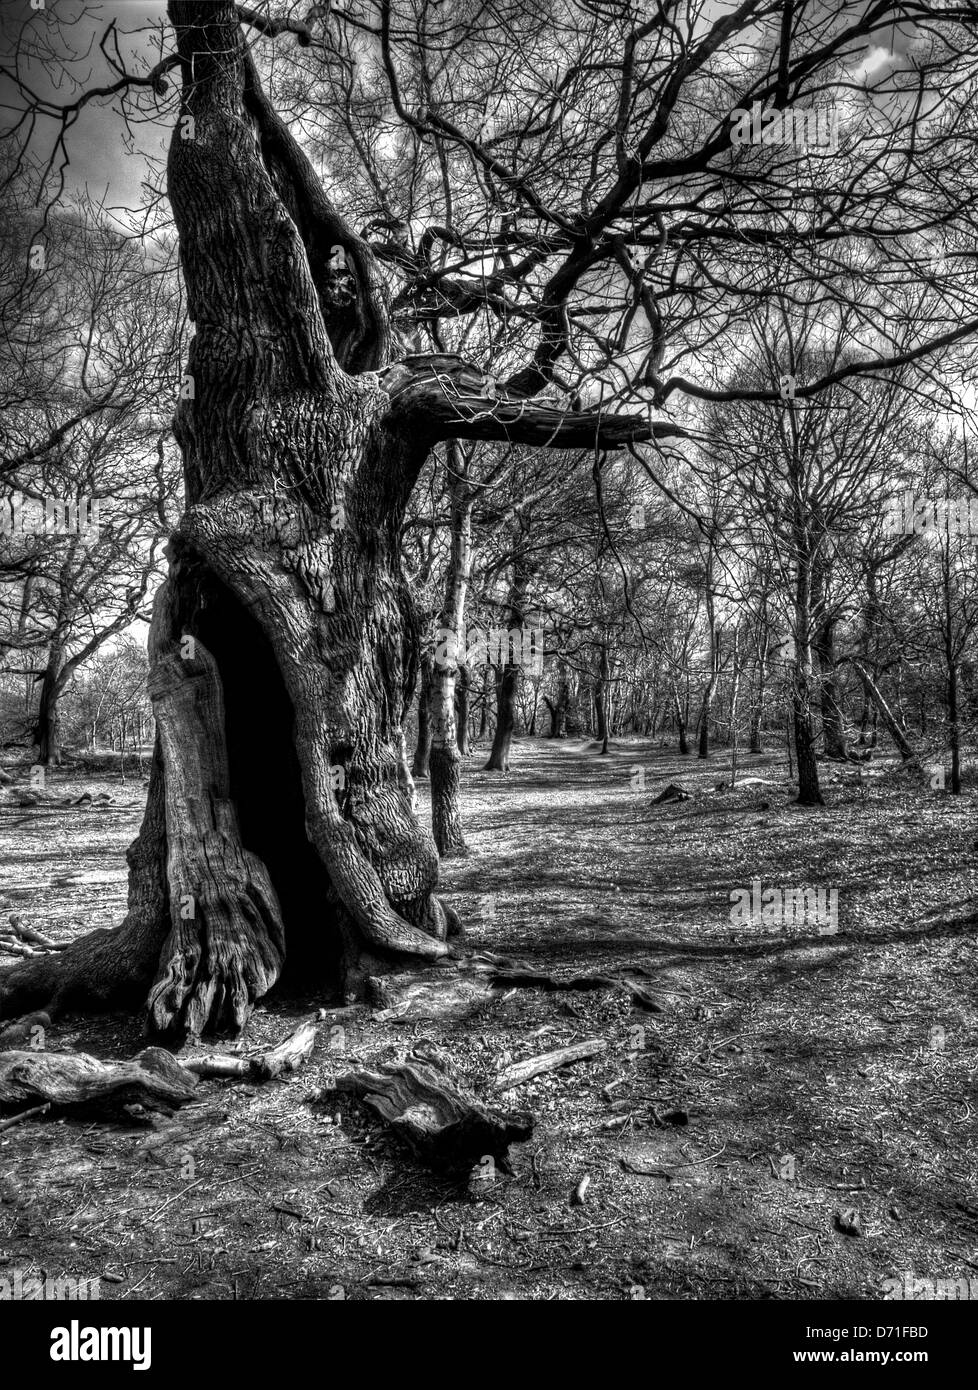 Shot at Sherwood Forest - Stock Image